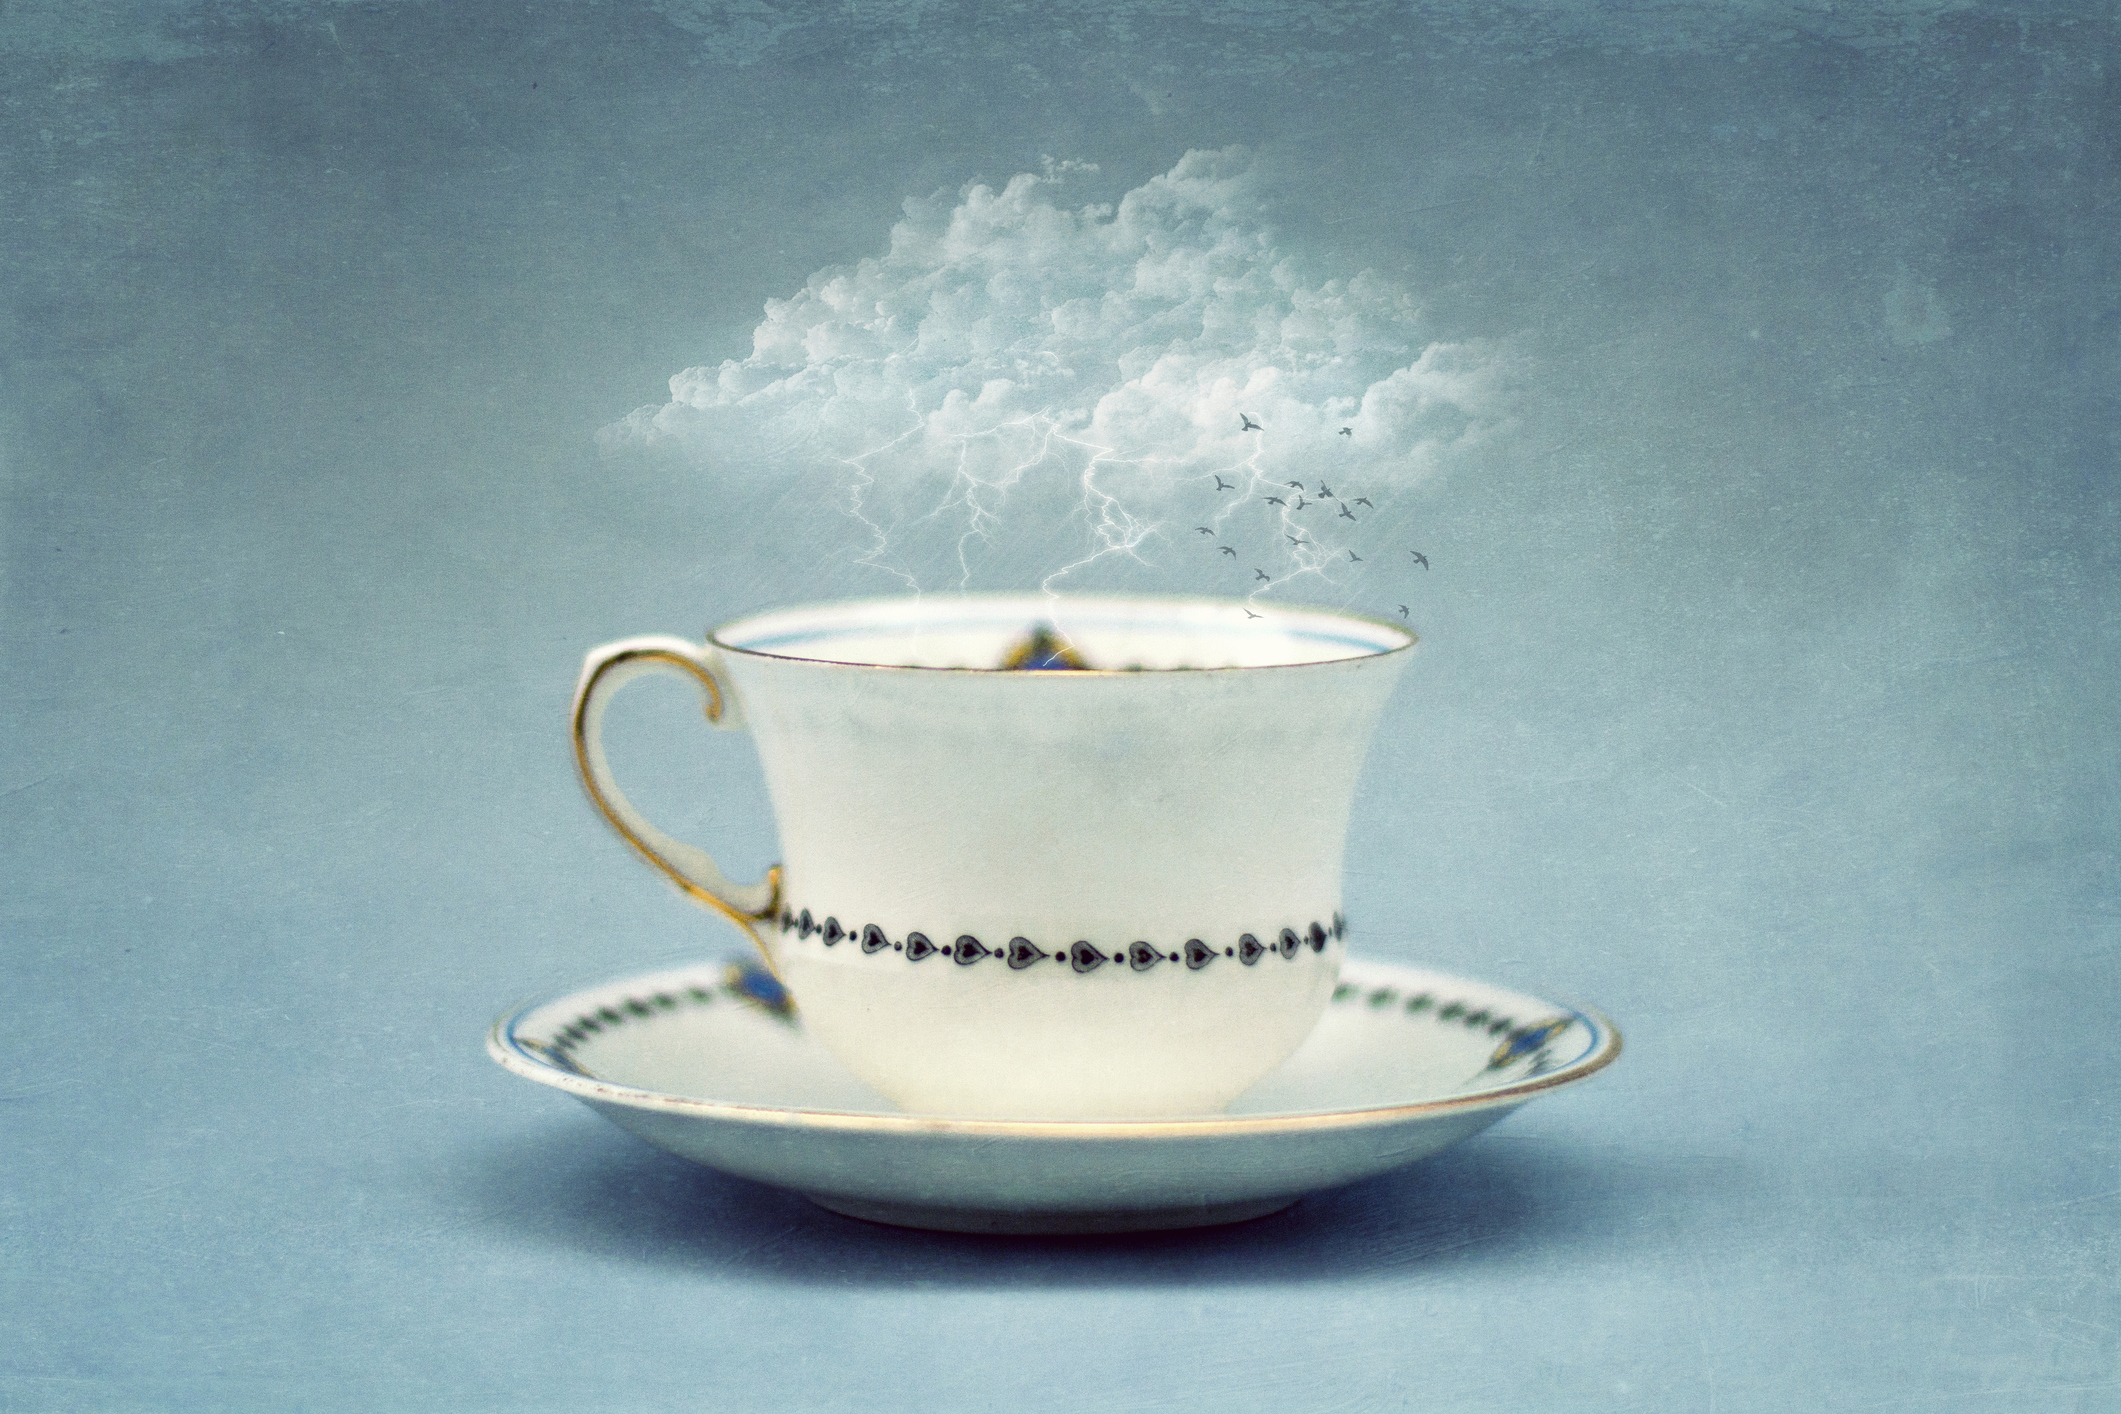 10 British teas ranked from worst to best – the definitive list